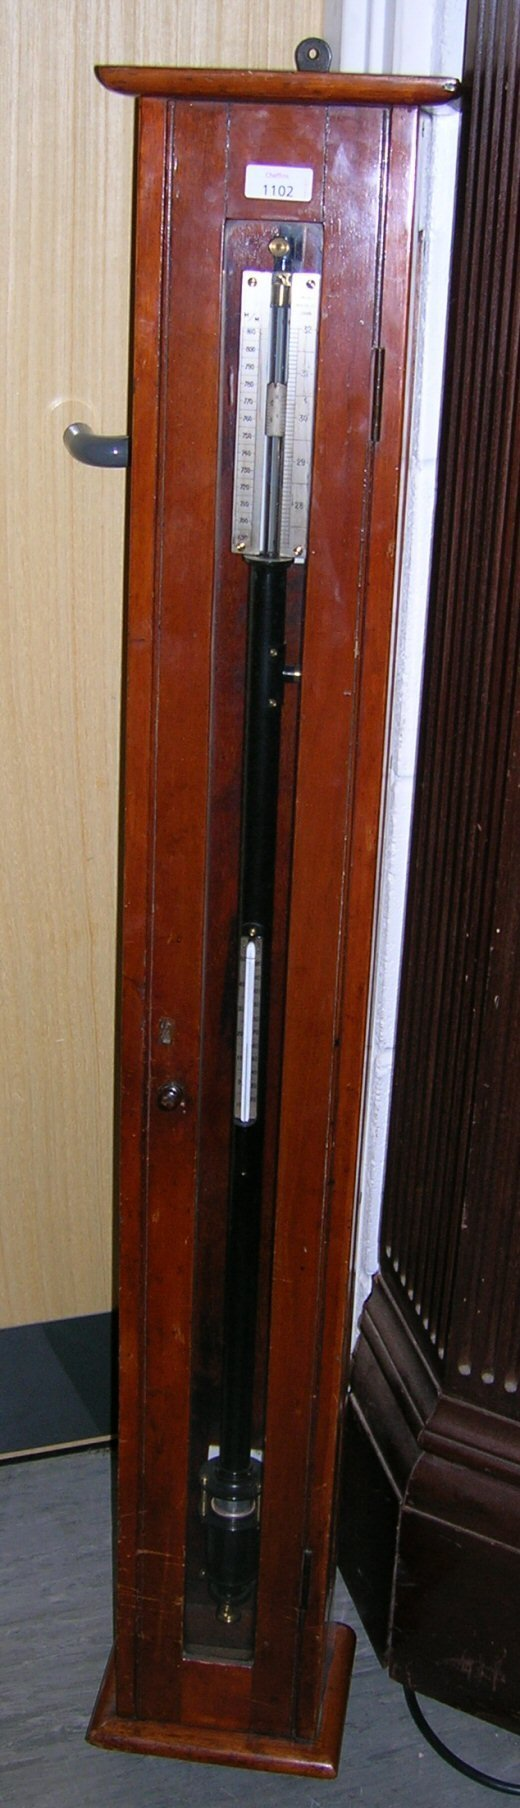 1102: A SCIENTIFIC STICK BAROMETER BY TOWSON MERCER &